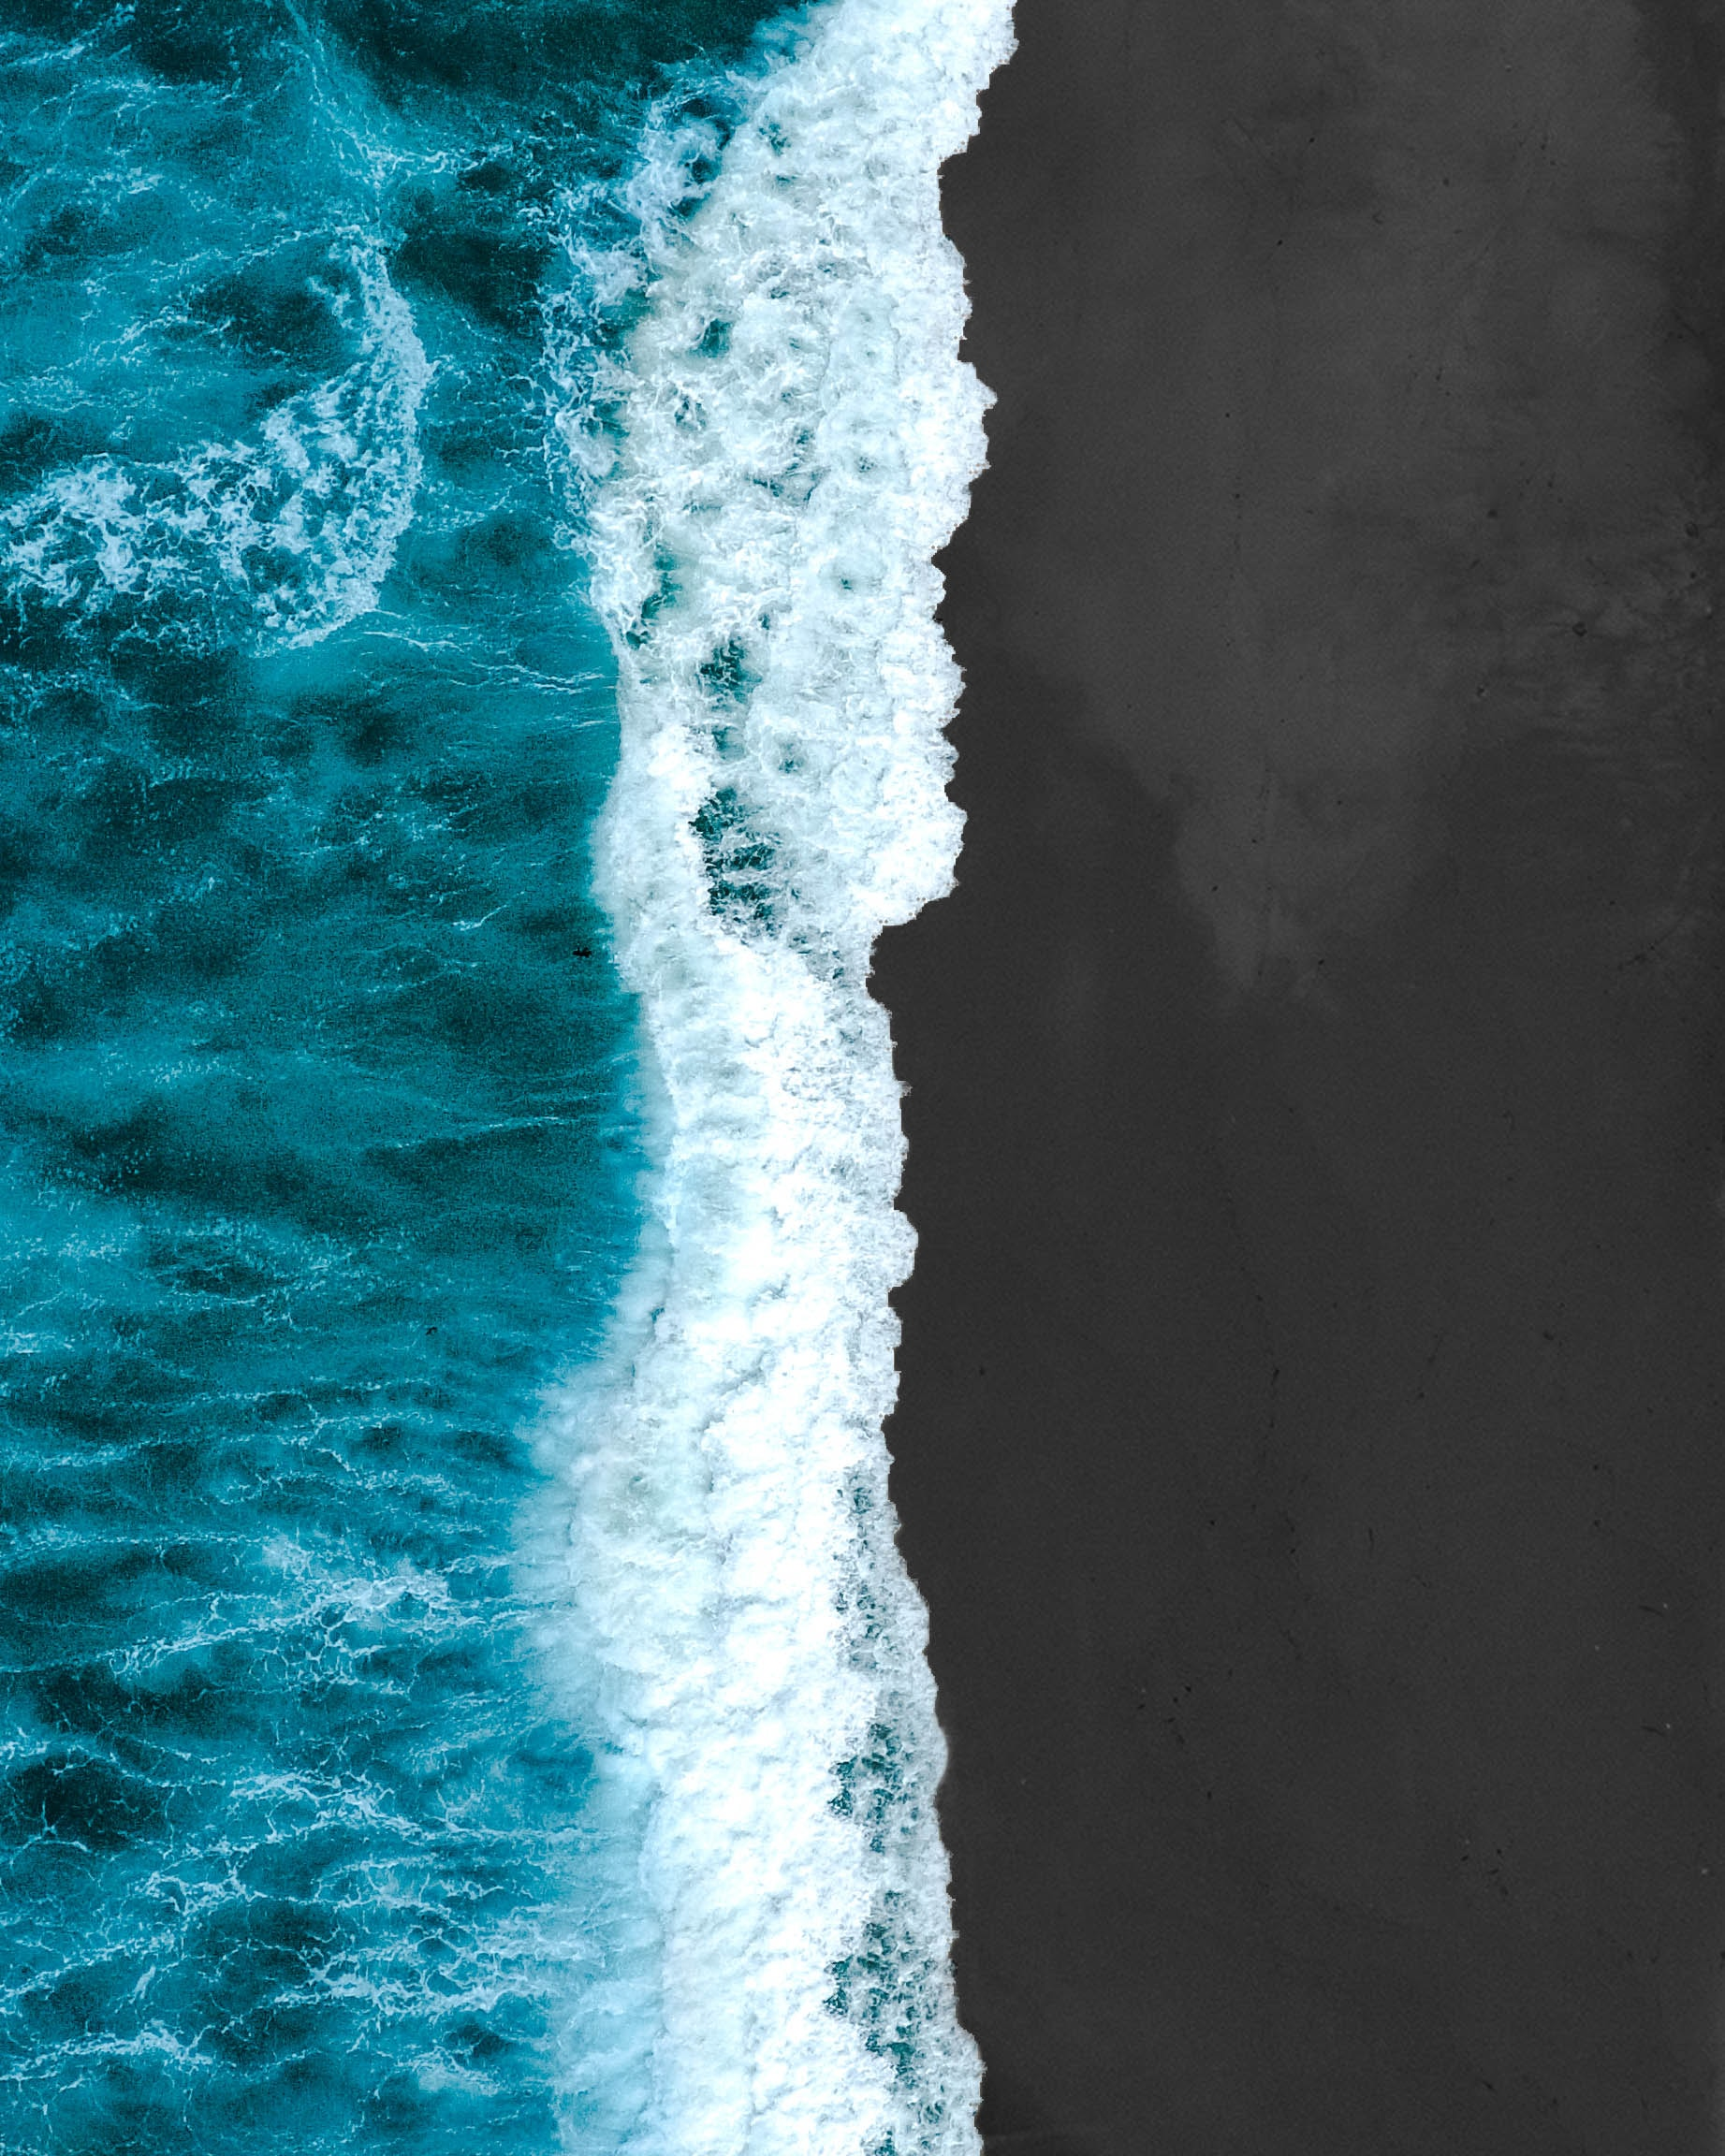 wallpaper Aerial photography of sea wave